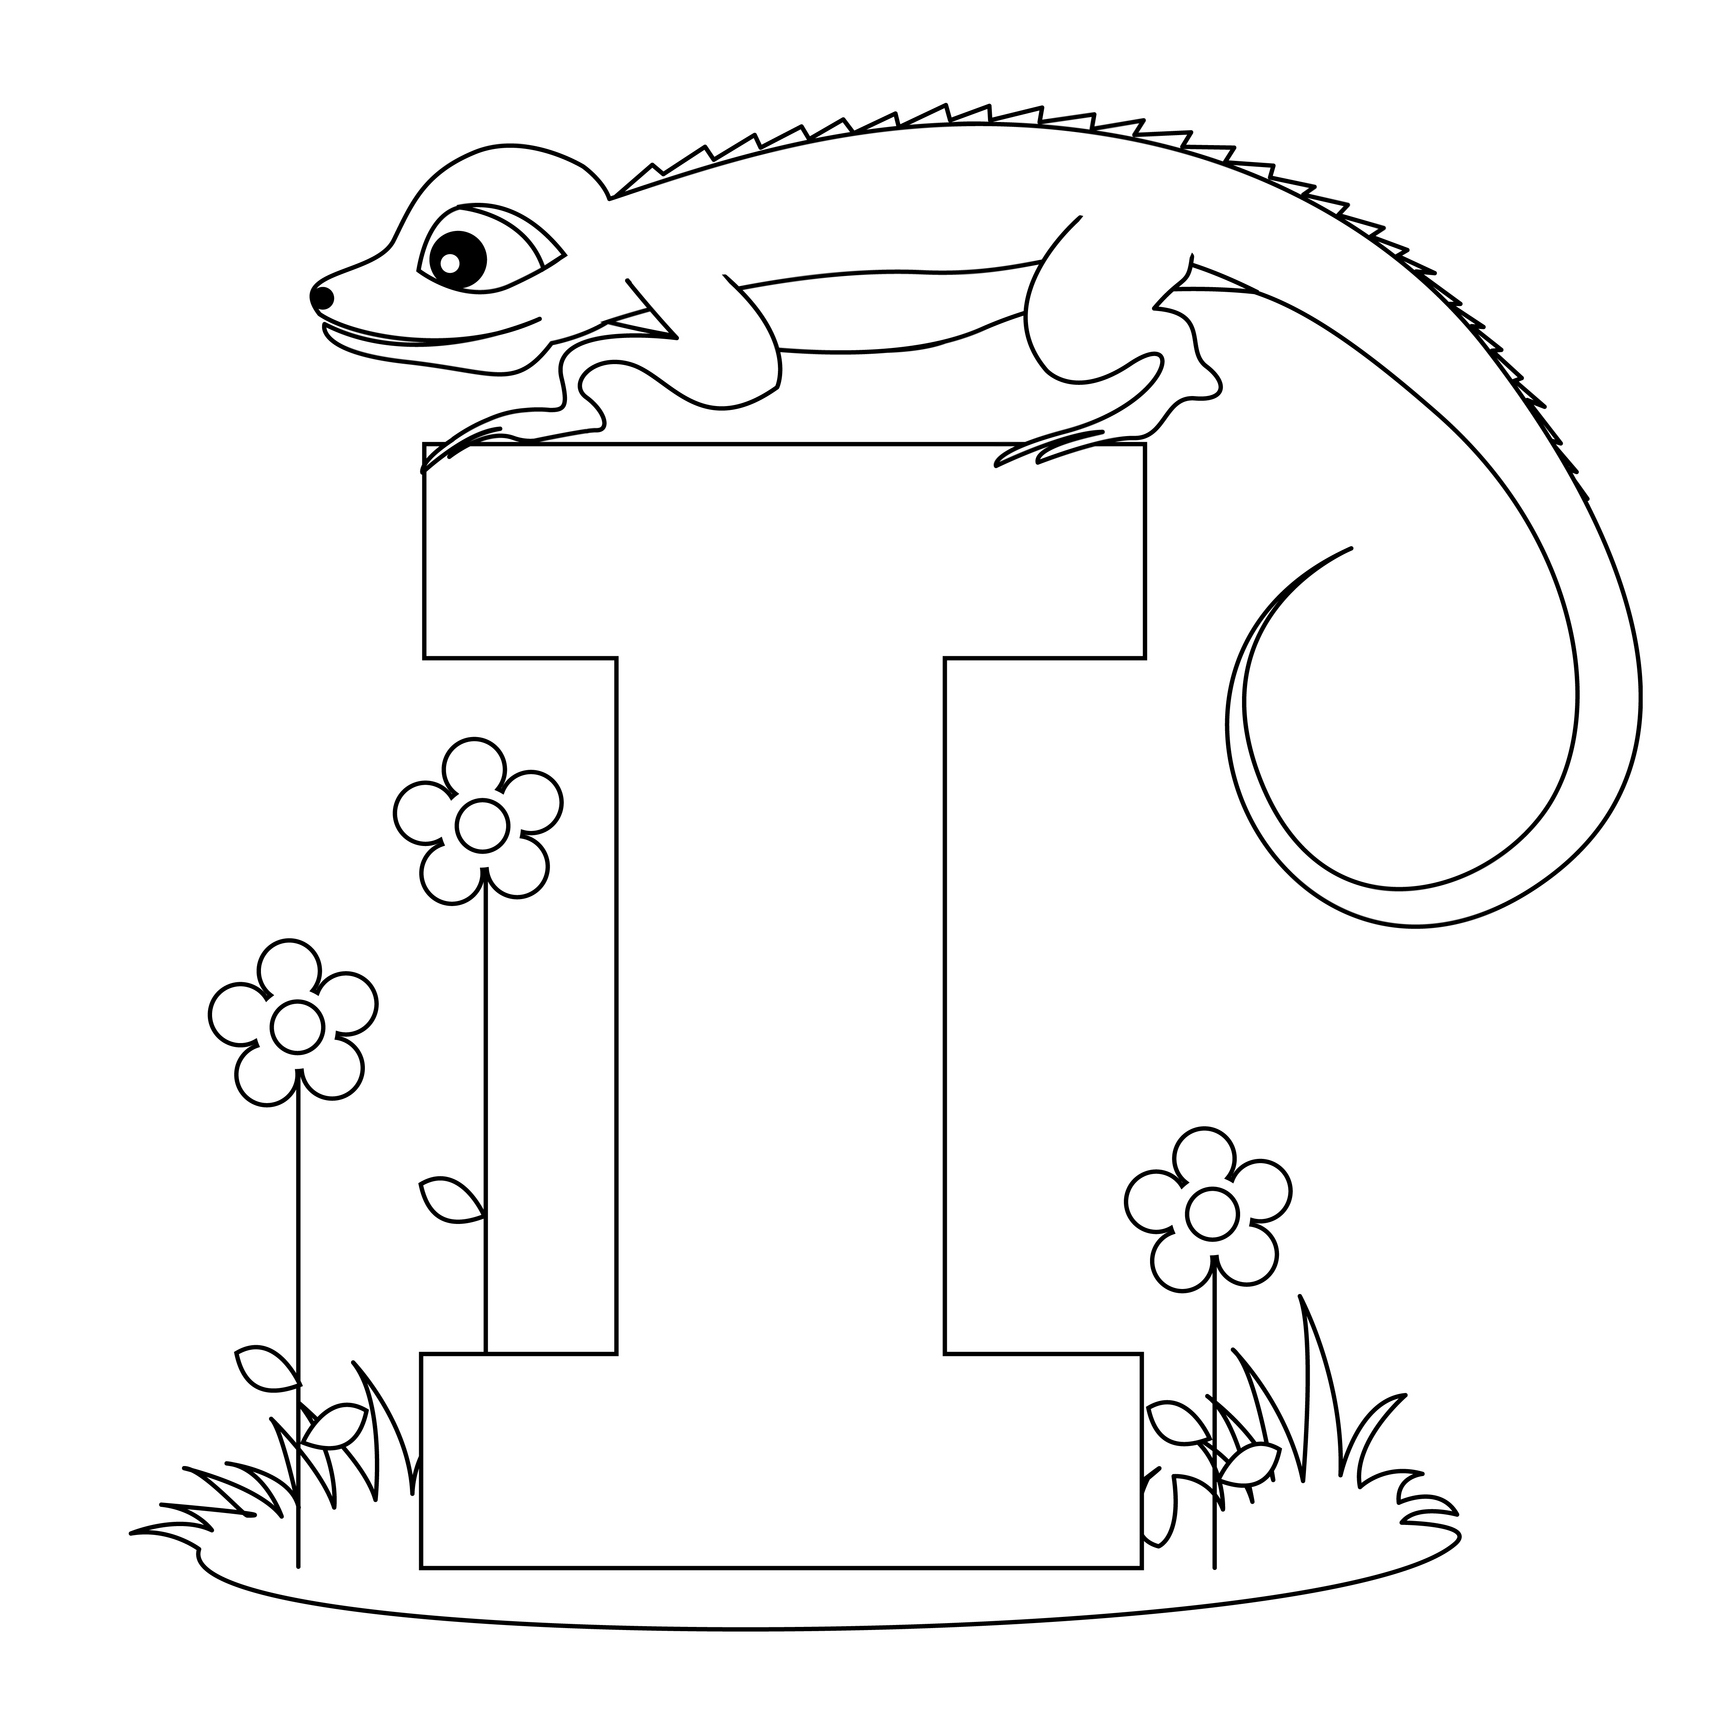 Free coloring pages alphabet letters - Color Alphabet Image I Alphabet With Animals Draw I Alphabet Guide Download Image Fr Free Coloring Pages Letter